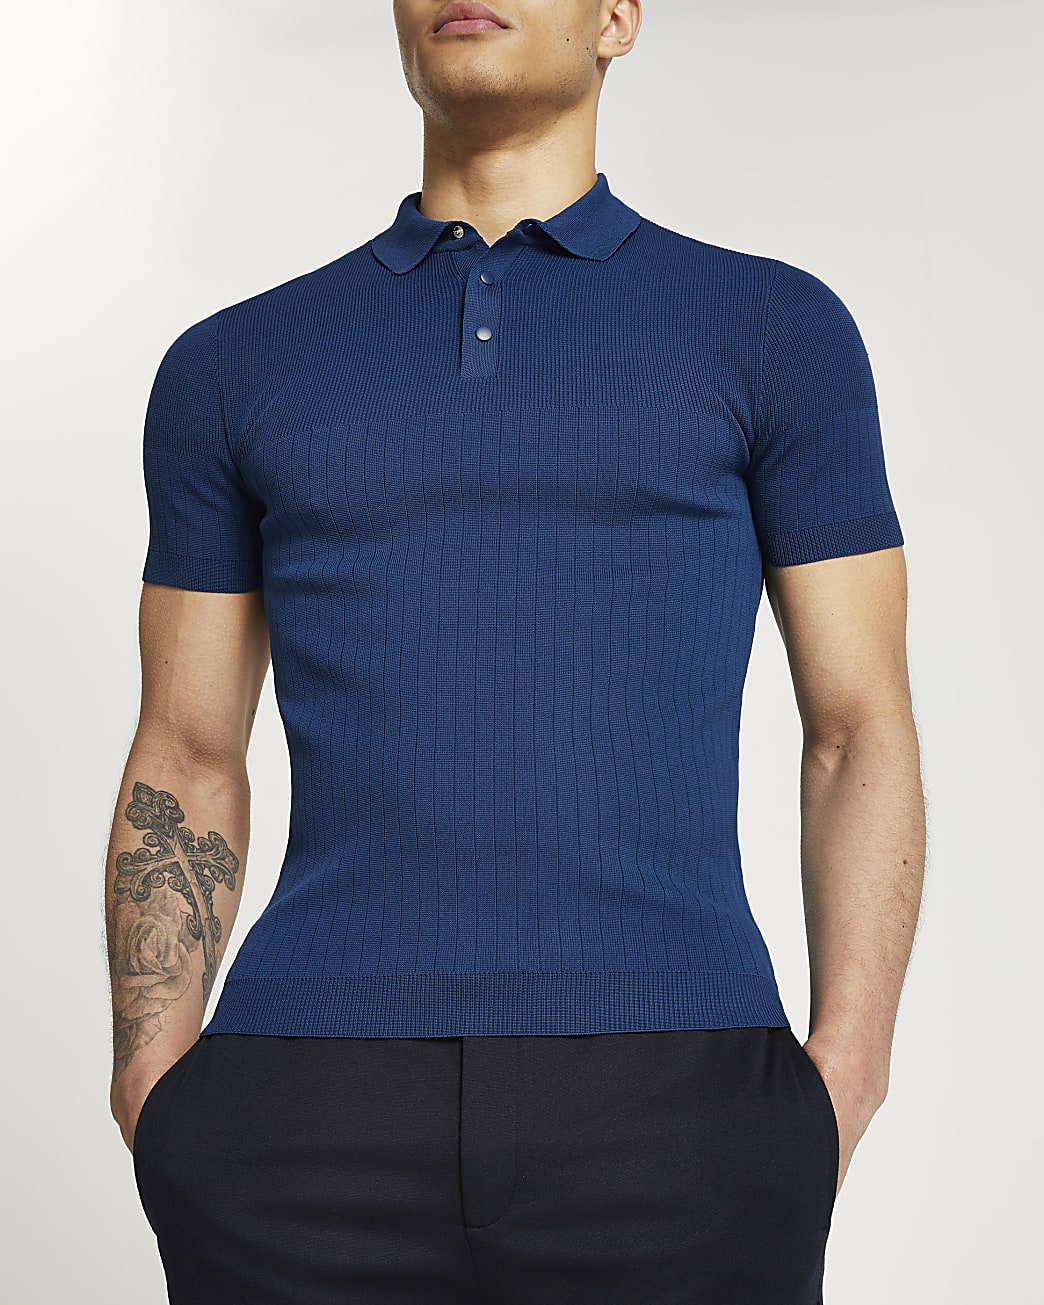 Blue muscle fit short sleeve polo shirt